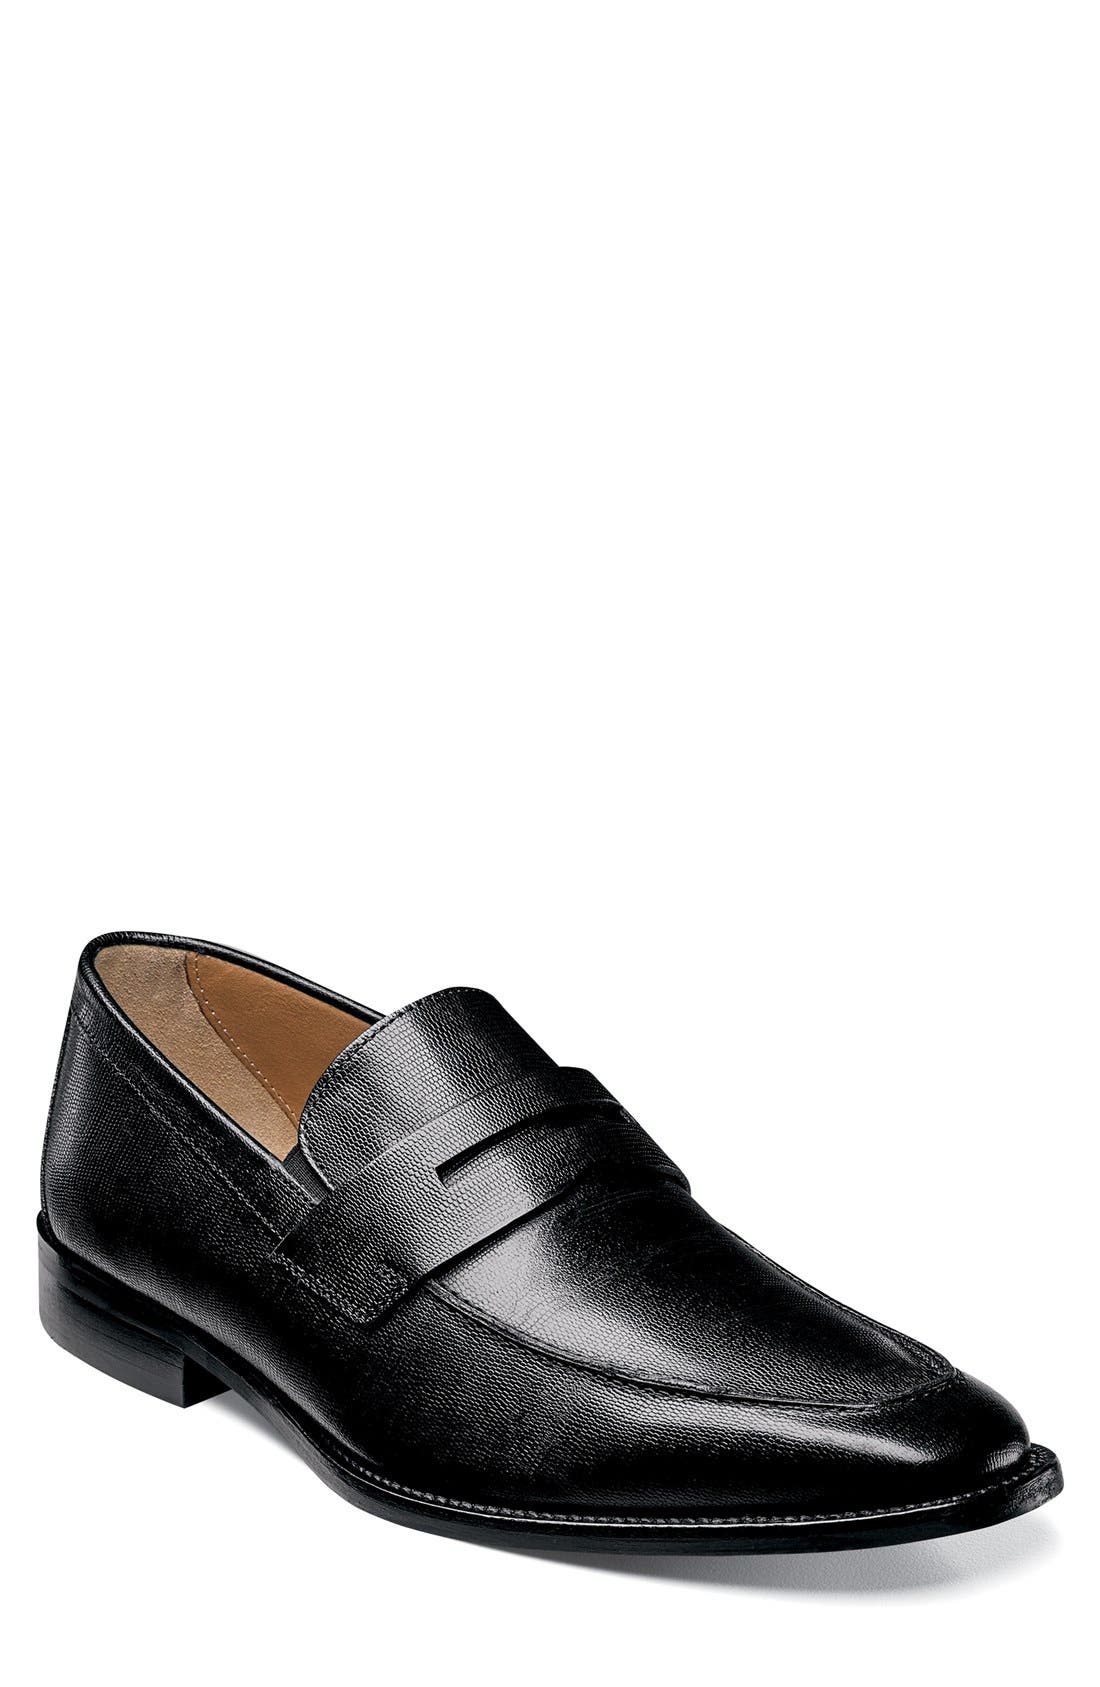 'Sabato' Penny Loafer,                         Main,                         color, Ebony Leather